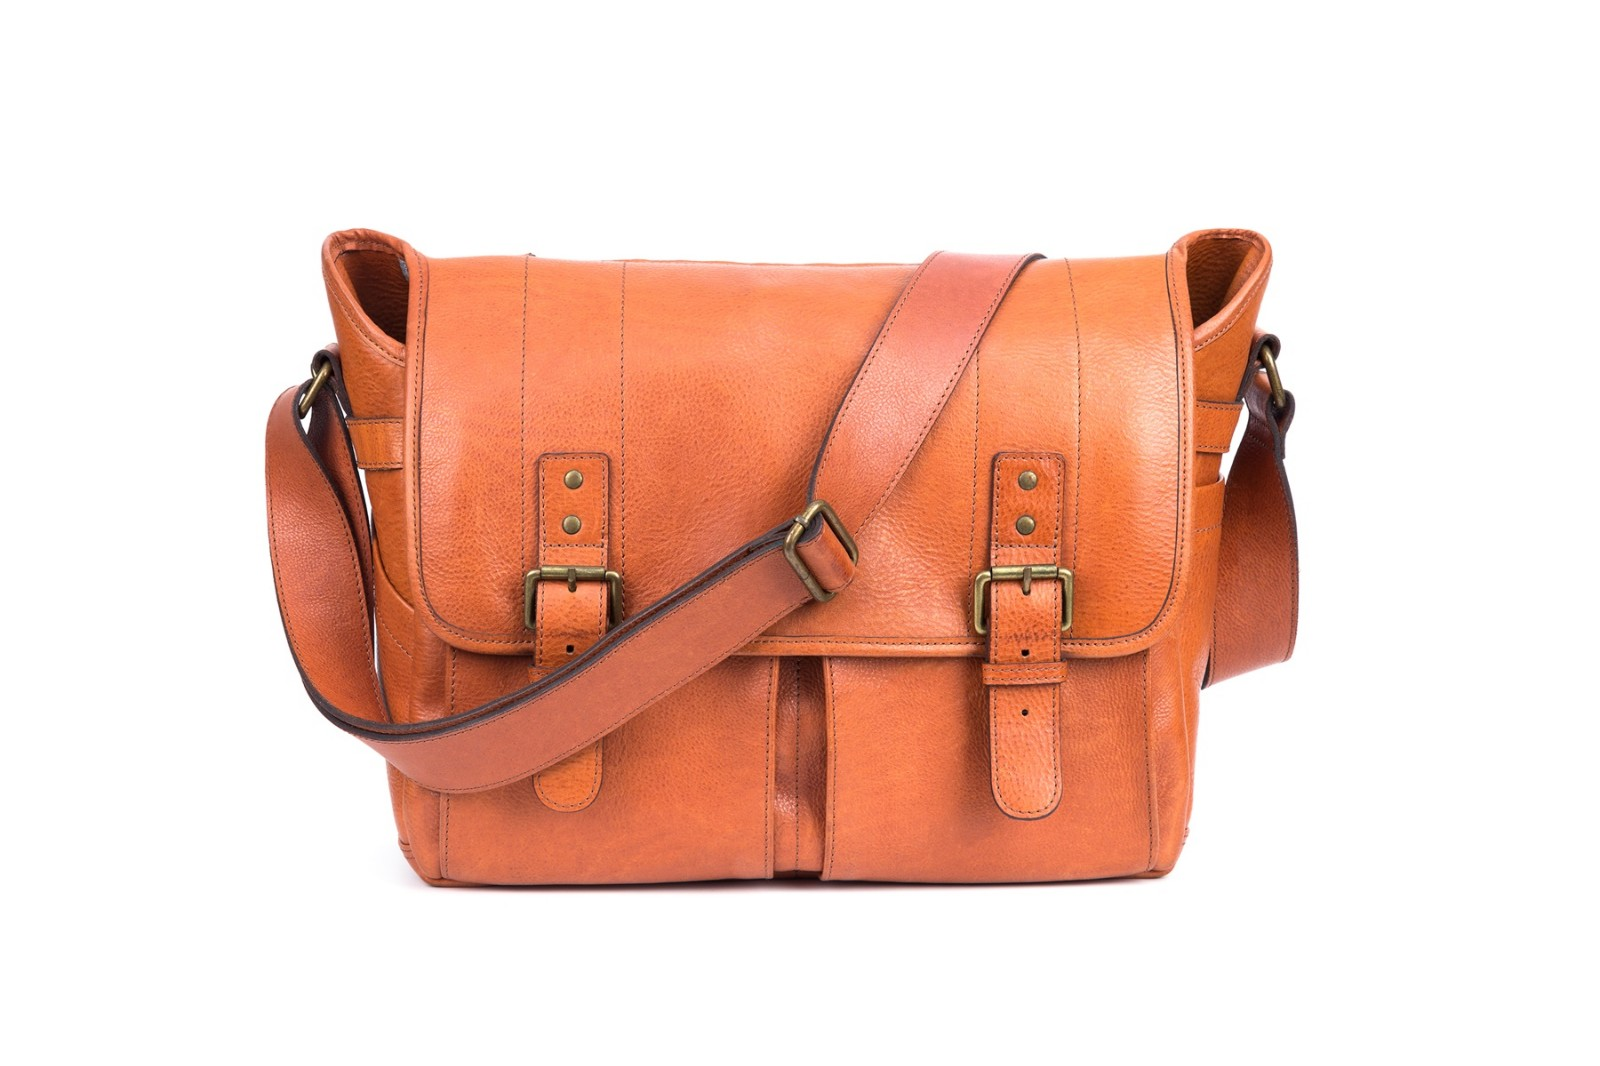 GF bags genuine leather best messenger bags supplier for girls-2